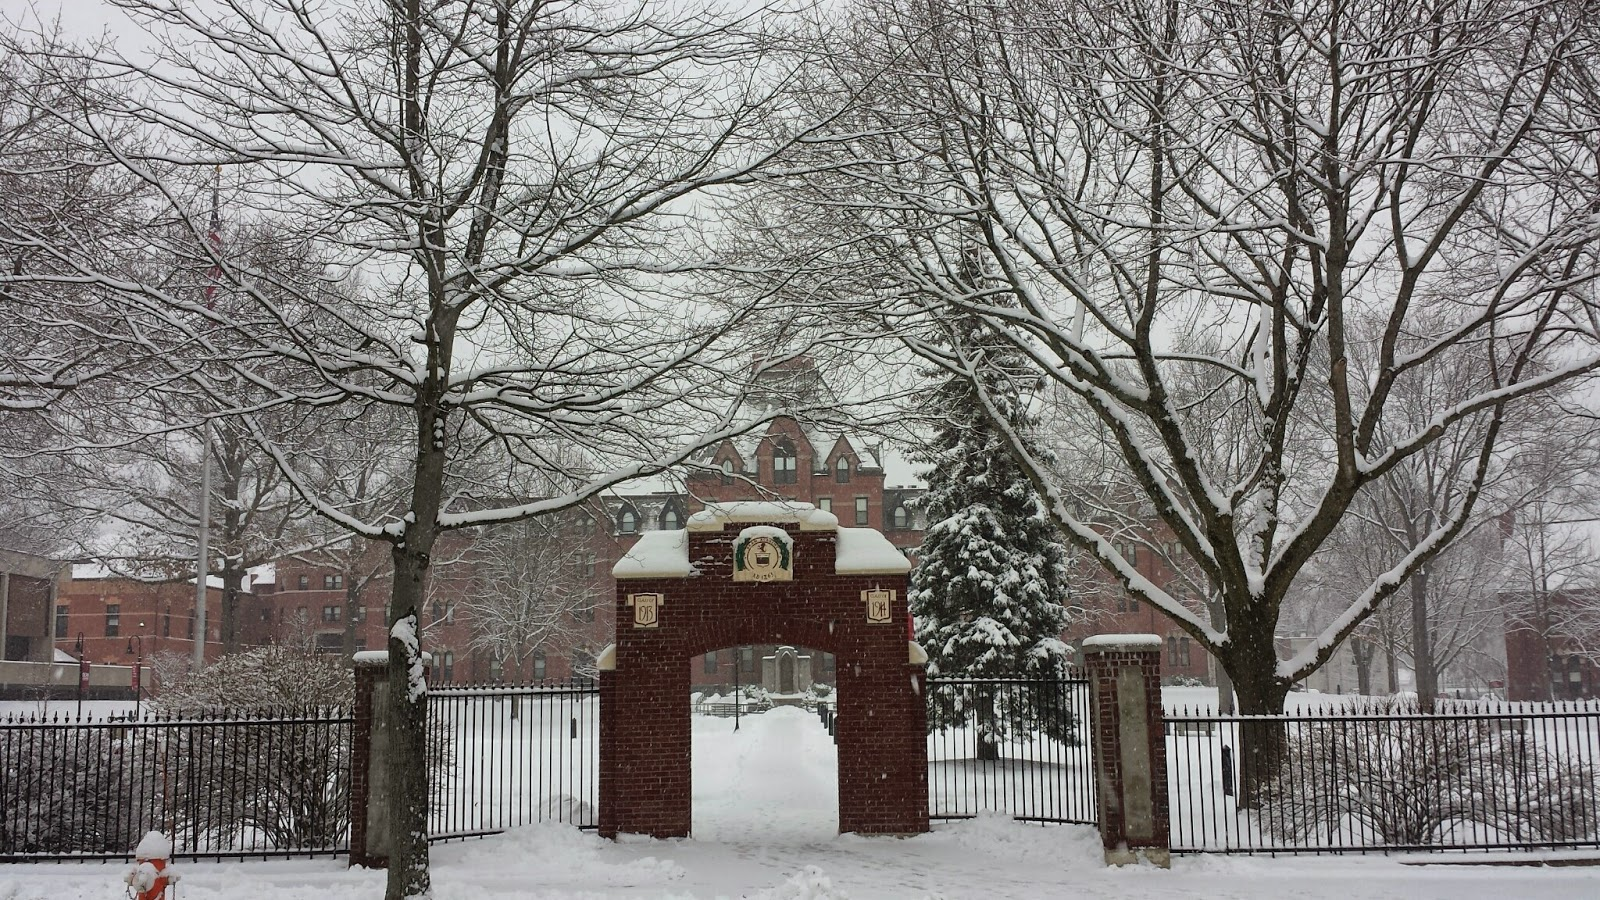 The entrance to Dean College in snow